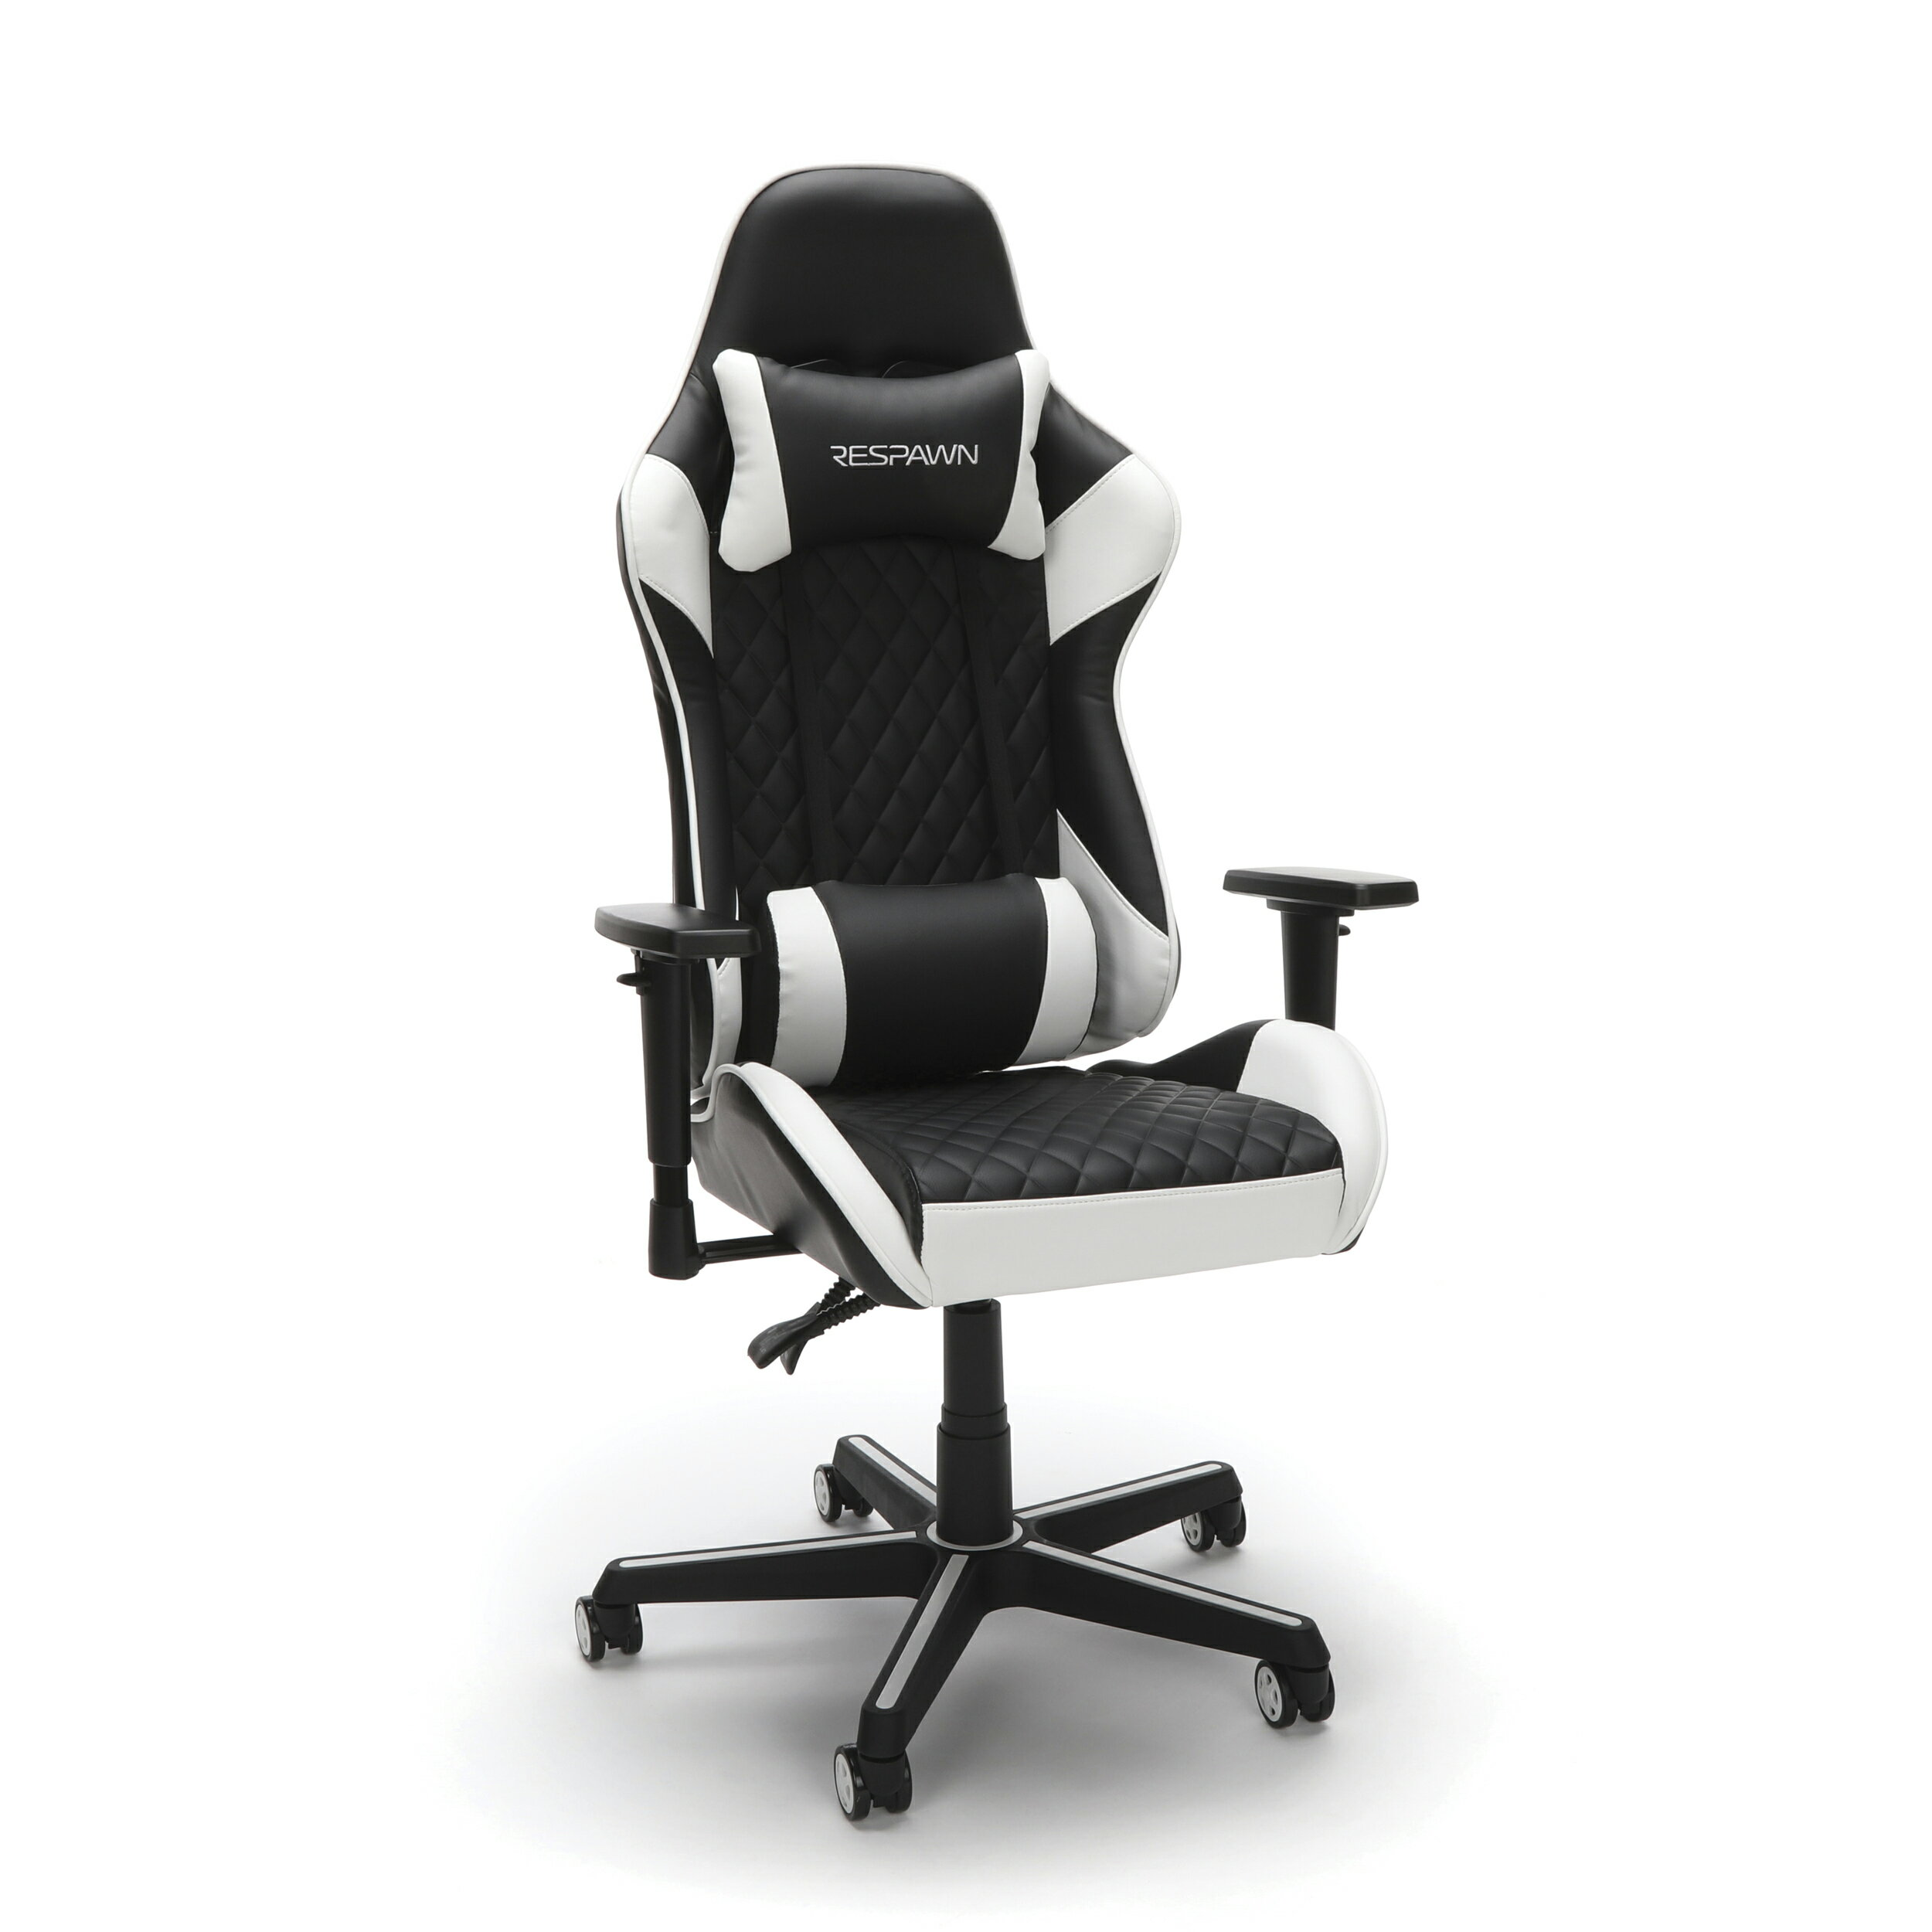 Wondrous Respawn 100 Racing Style Gaming Chair Reclining Ergonomic Leather Chair Office Or Gaming Chair White Rsp 100 Uwap Interior Chair Design Uwaporg